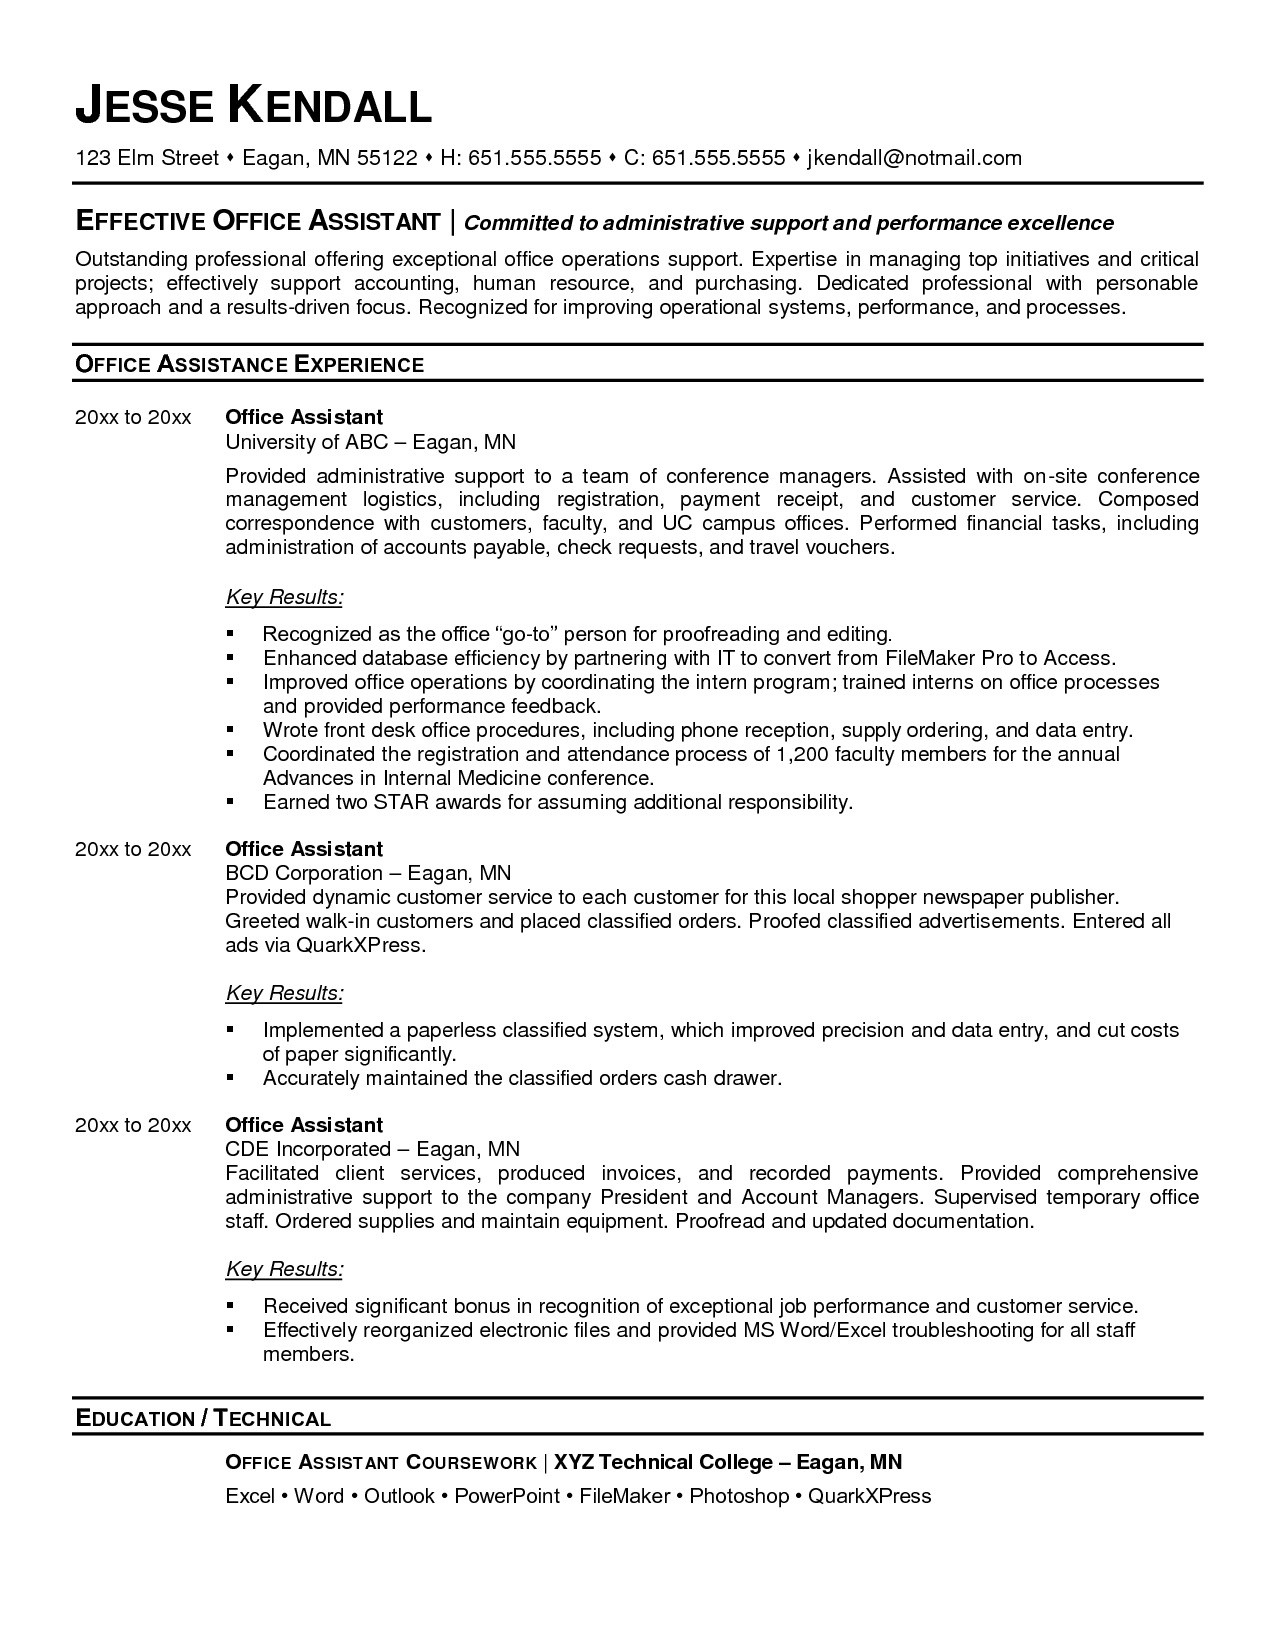 medical office manager resume Collection-Medical fice Manager Resume Examples New Medical Fice Assistant Resume Sample Beautiful 10 Sample Resume 6-q